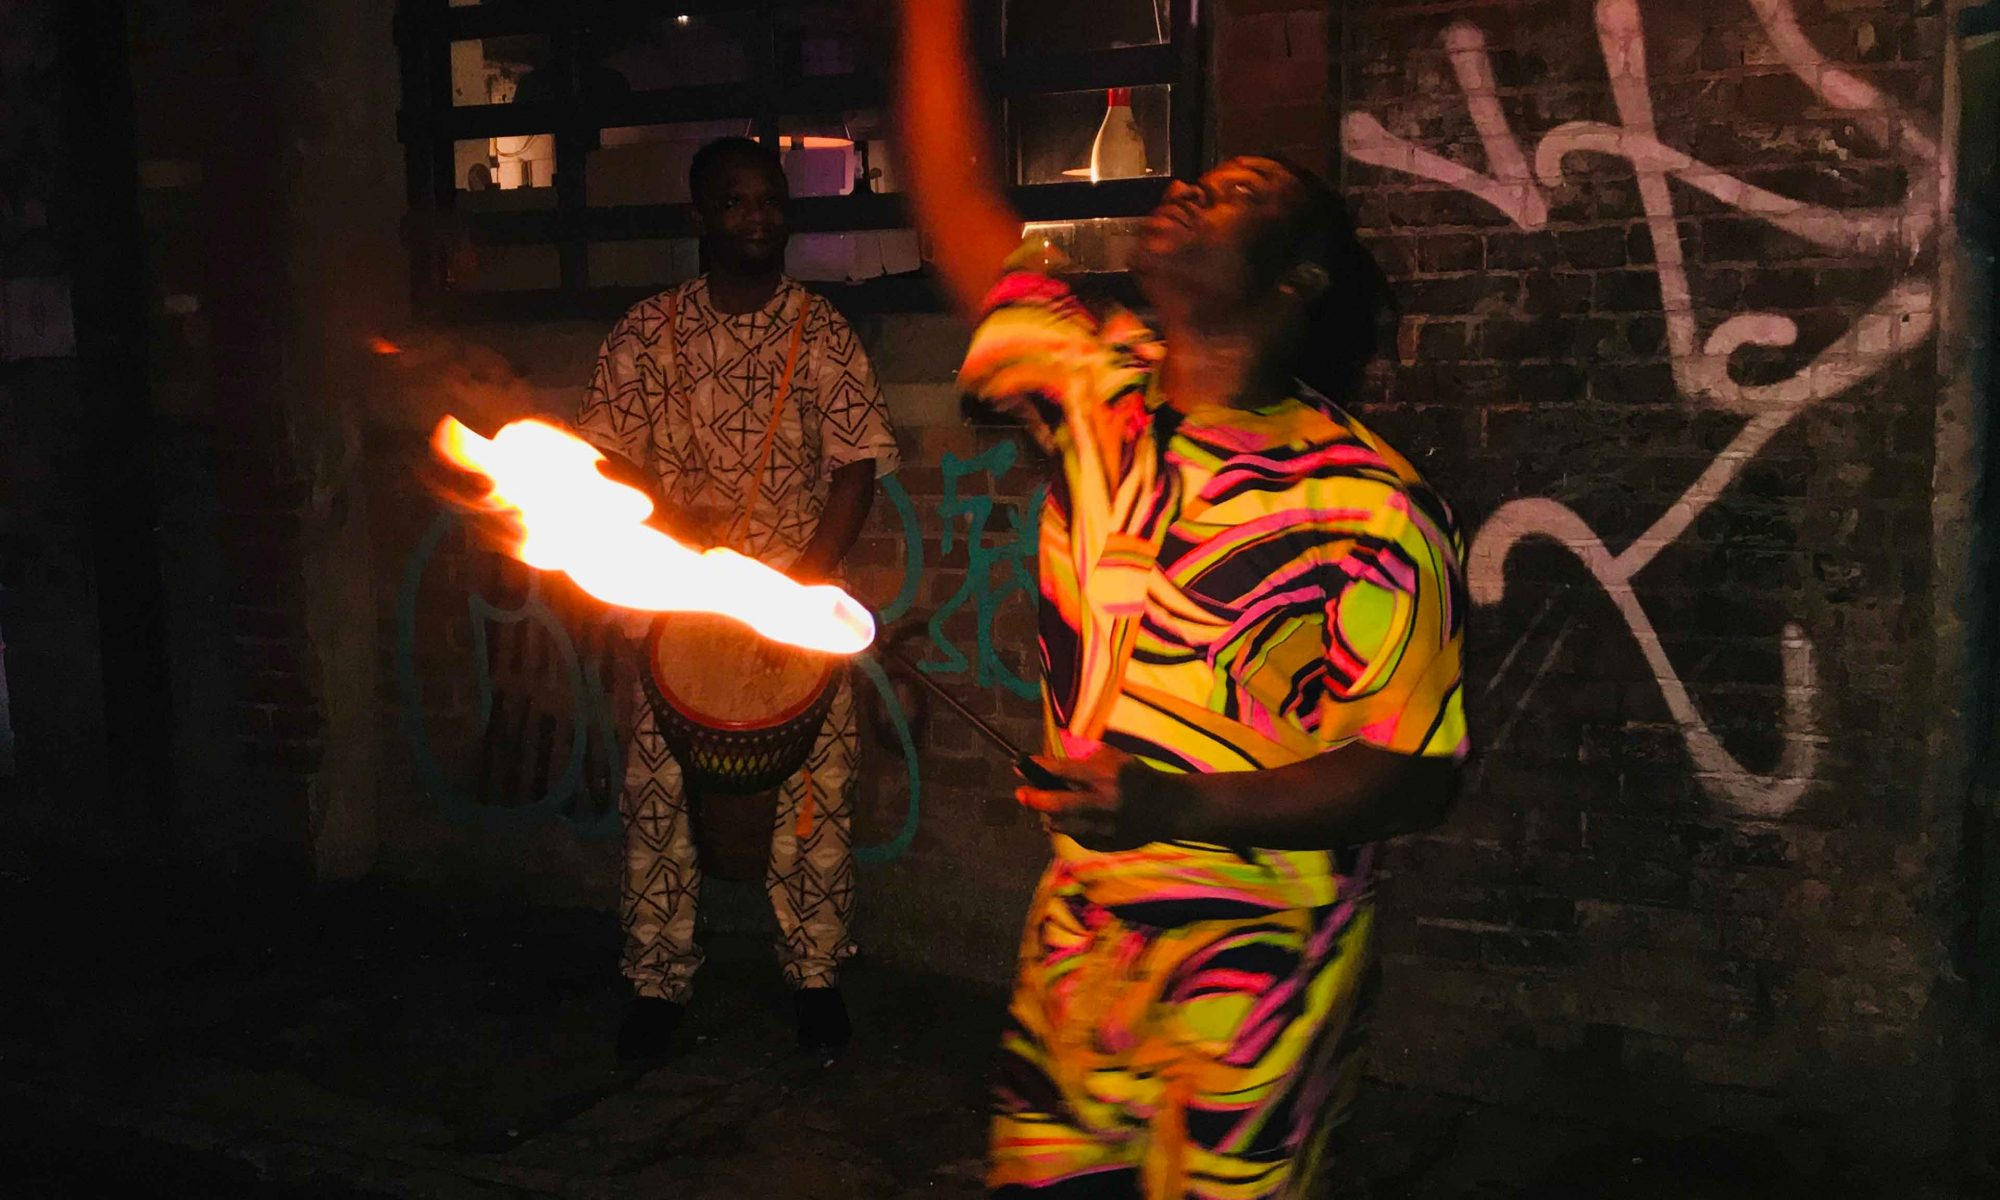 Fire eating performers at the Rock House 2nd birthday party